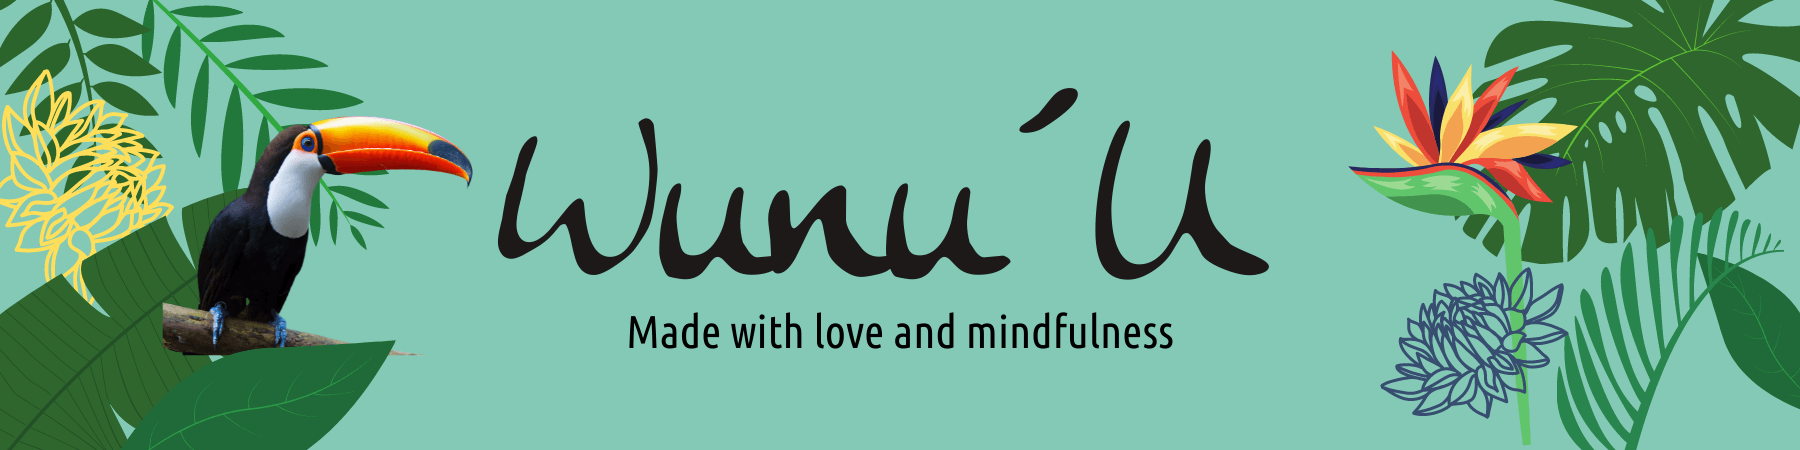 Wunuu Banner MAde with love and consciousness